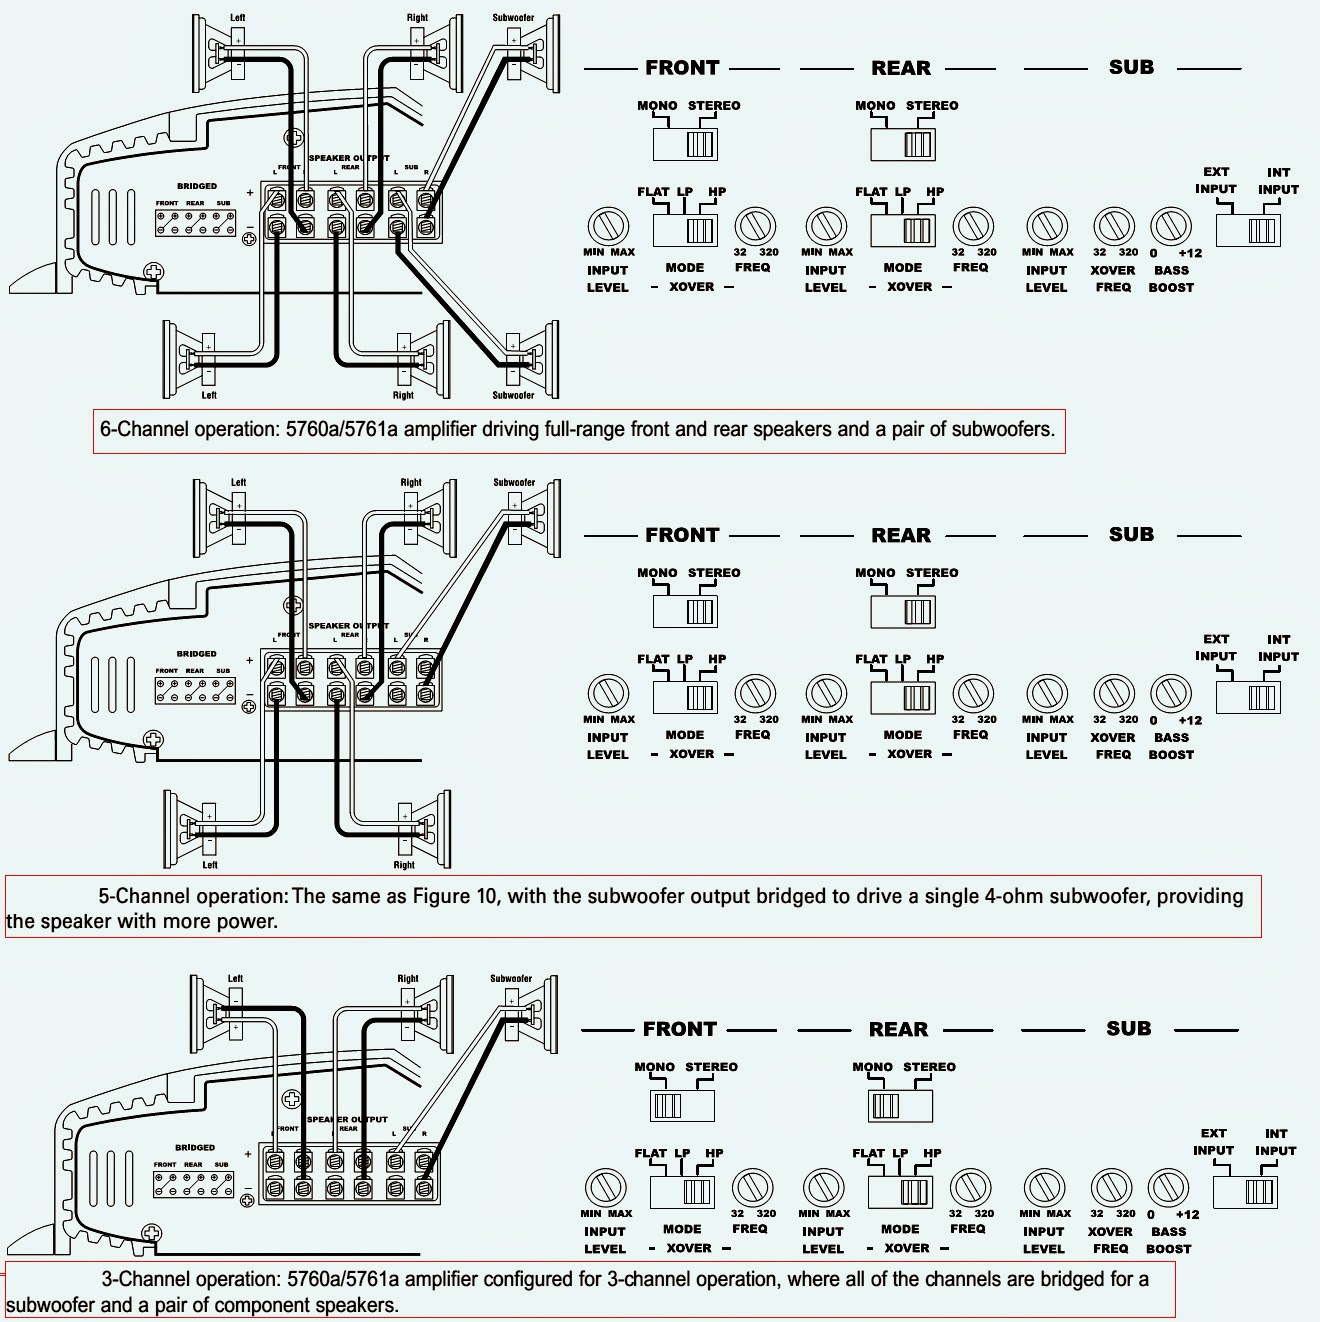 wiring diagram settings 5 4 3 channel settings [ 1320 x 1322 Pixel ]